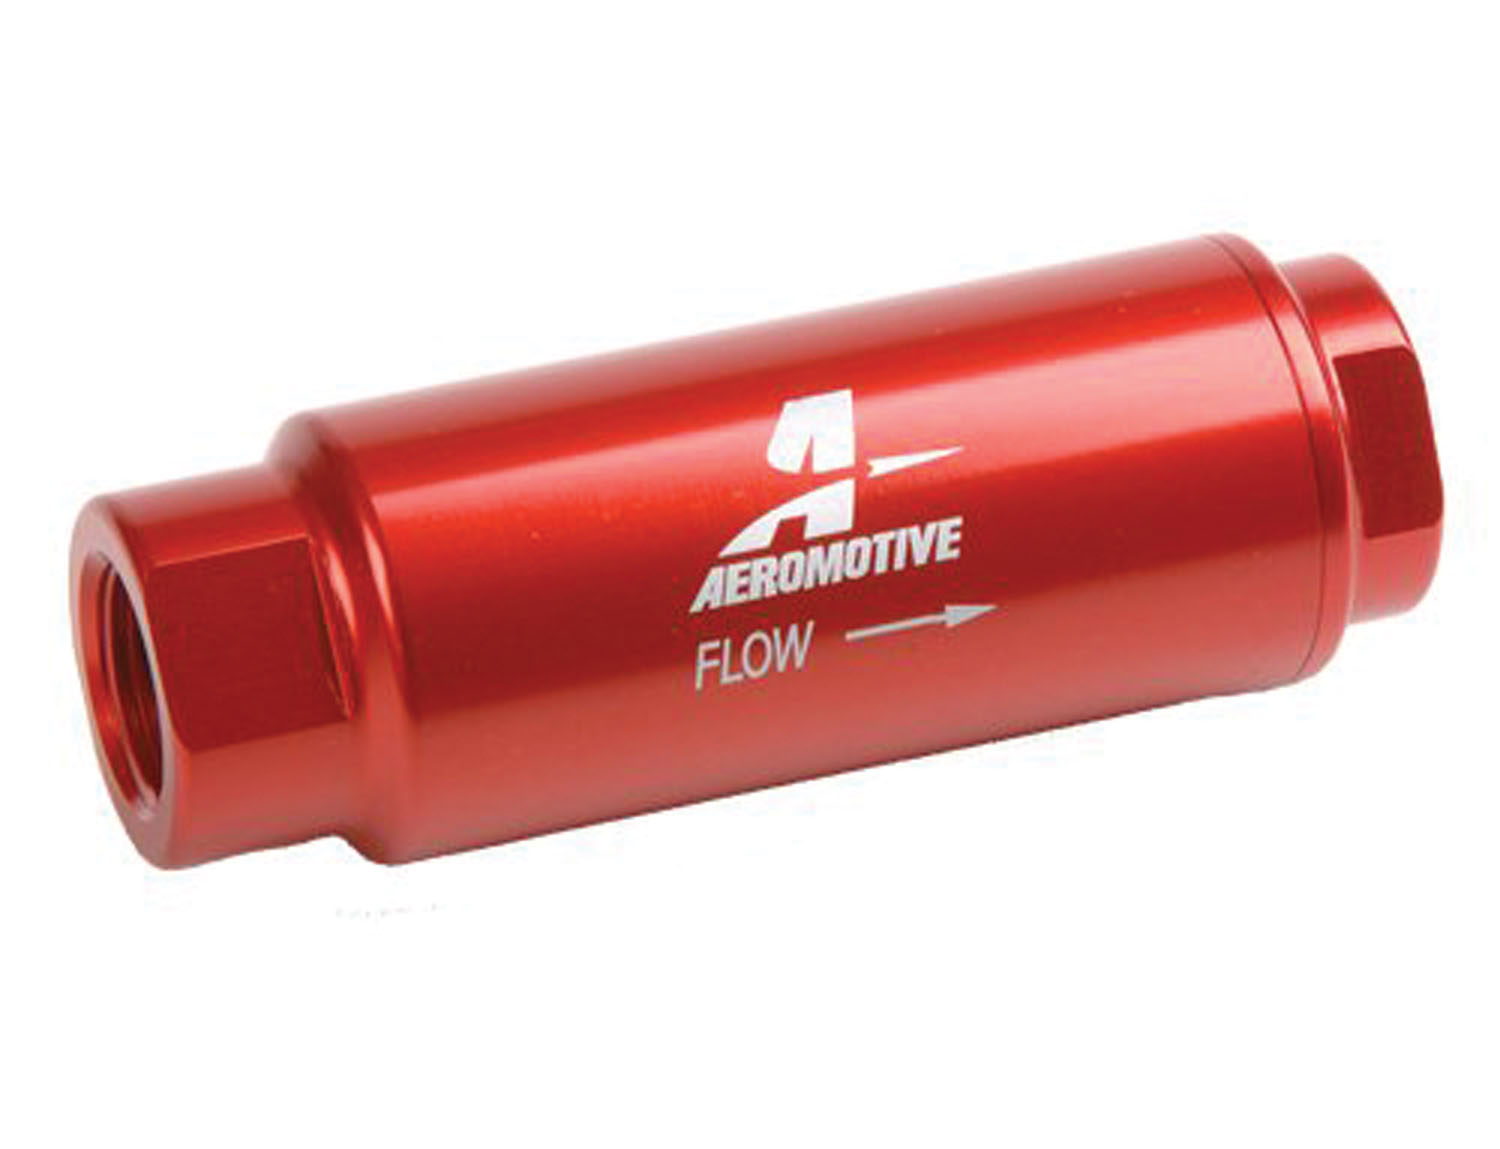 hight resolution of aeromotive 3 8 in npt 40 micron ss series red fuel filter p n